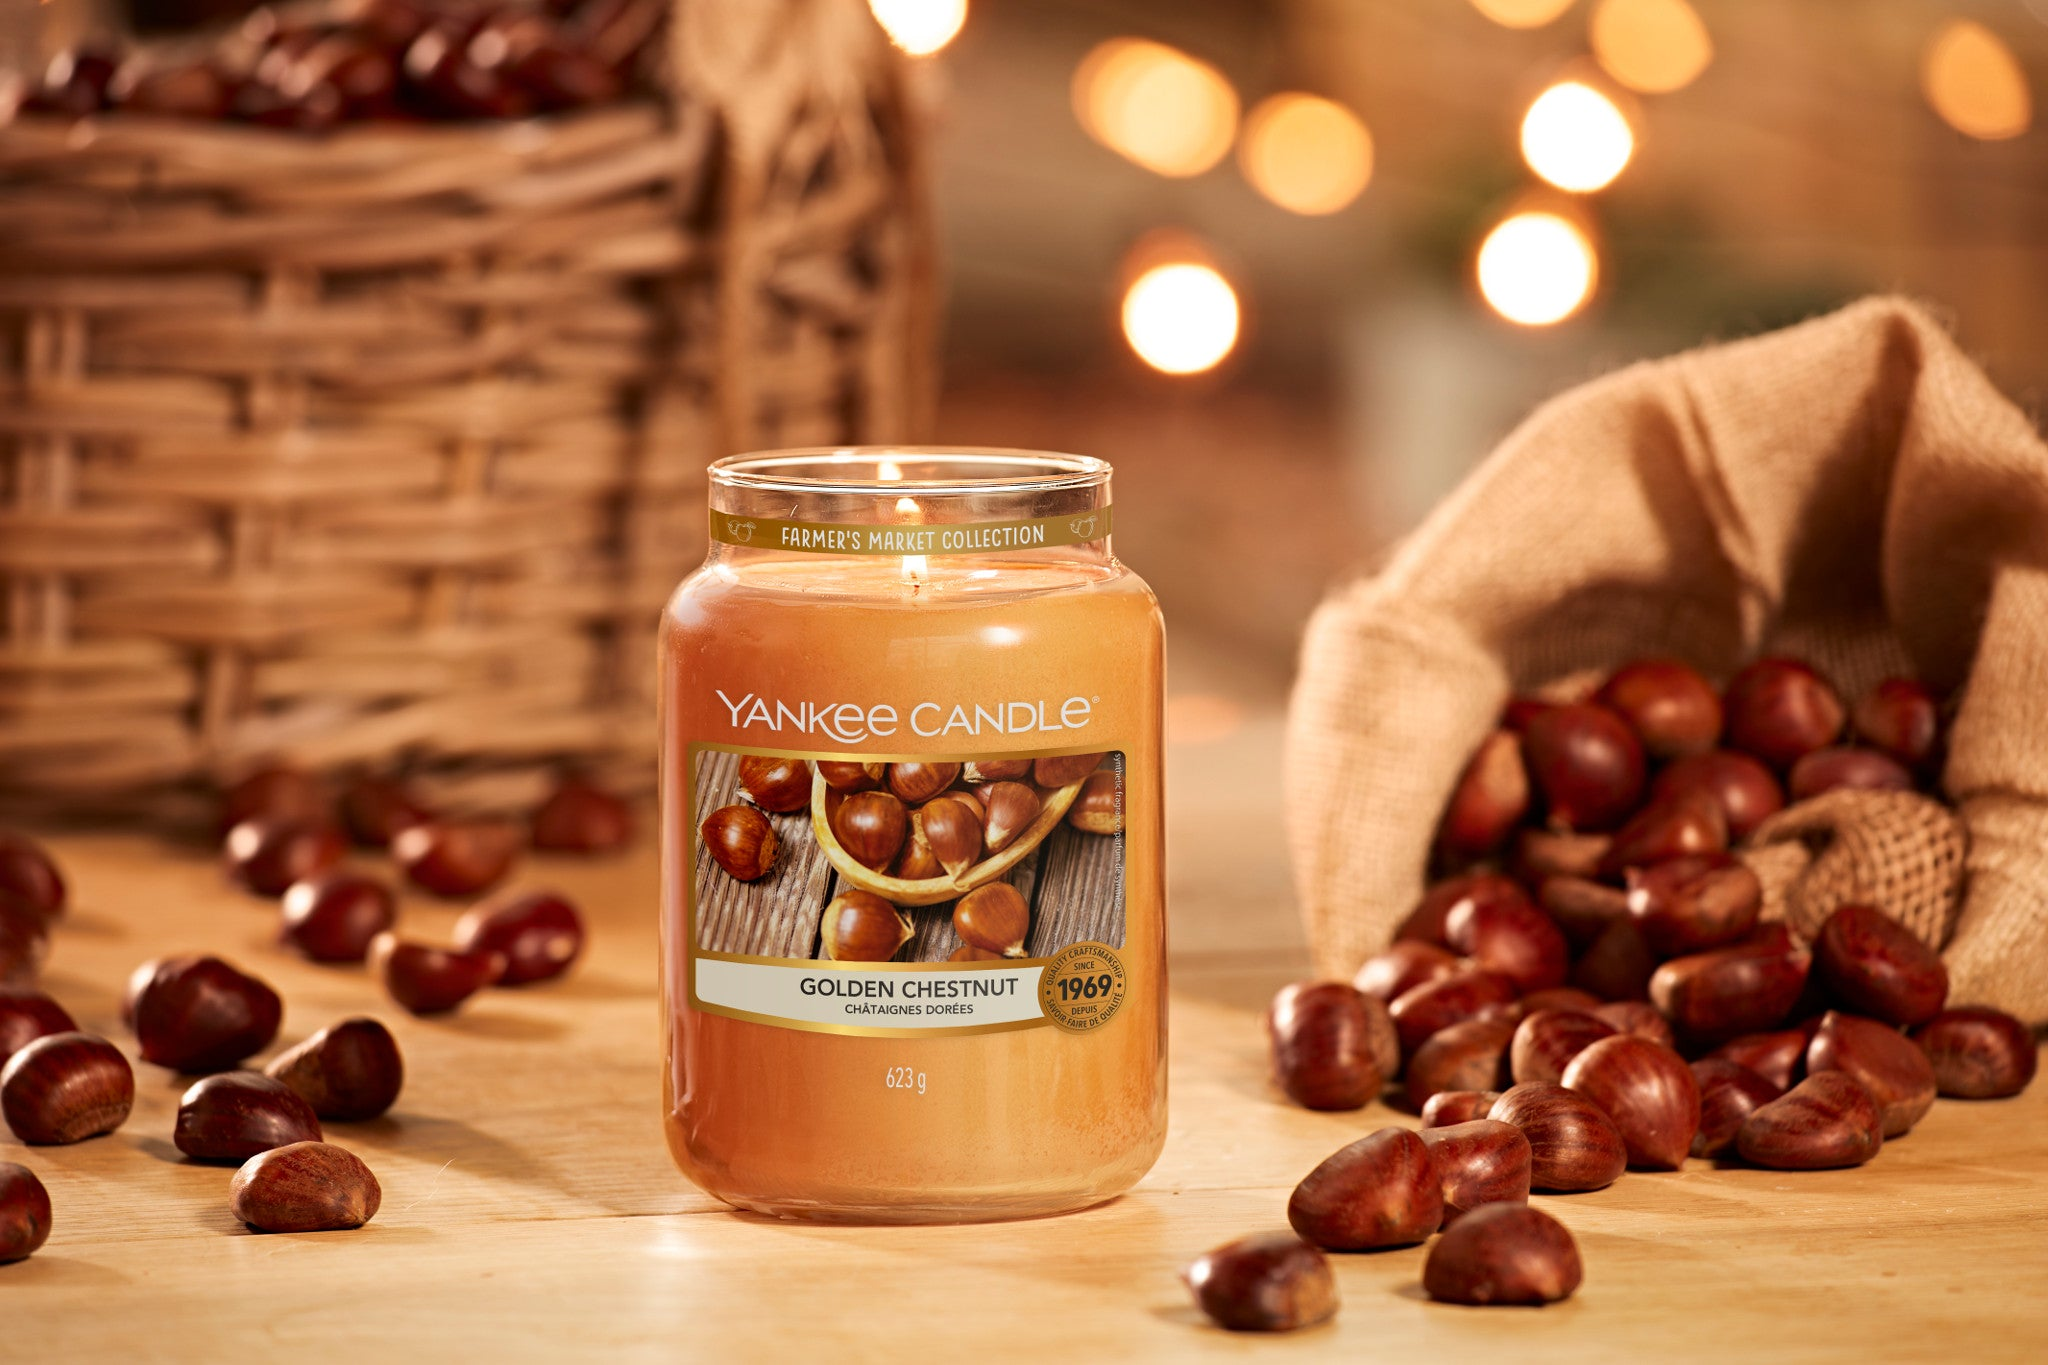 GOLDEN CHESTNUT -Yankee Candle- Giara Piccola